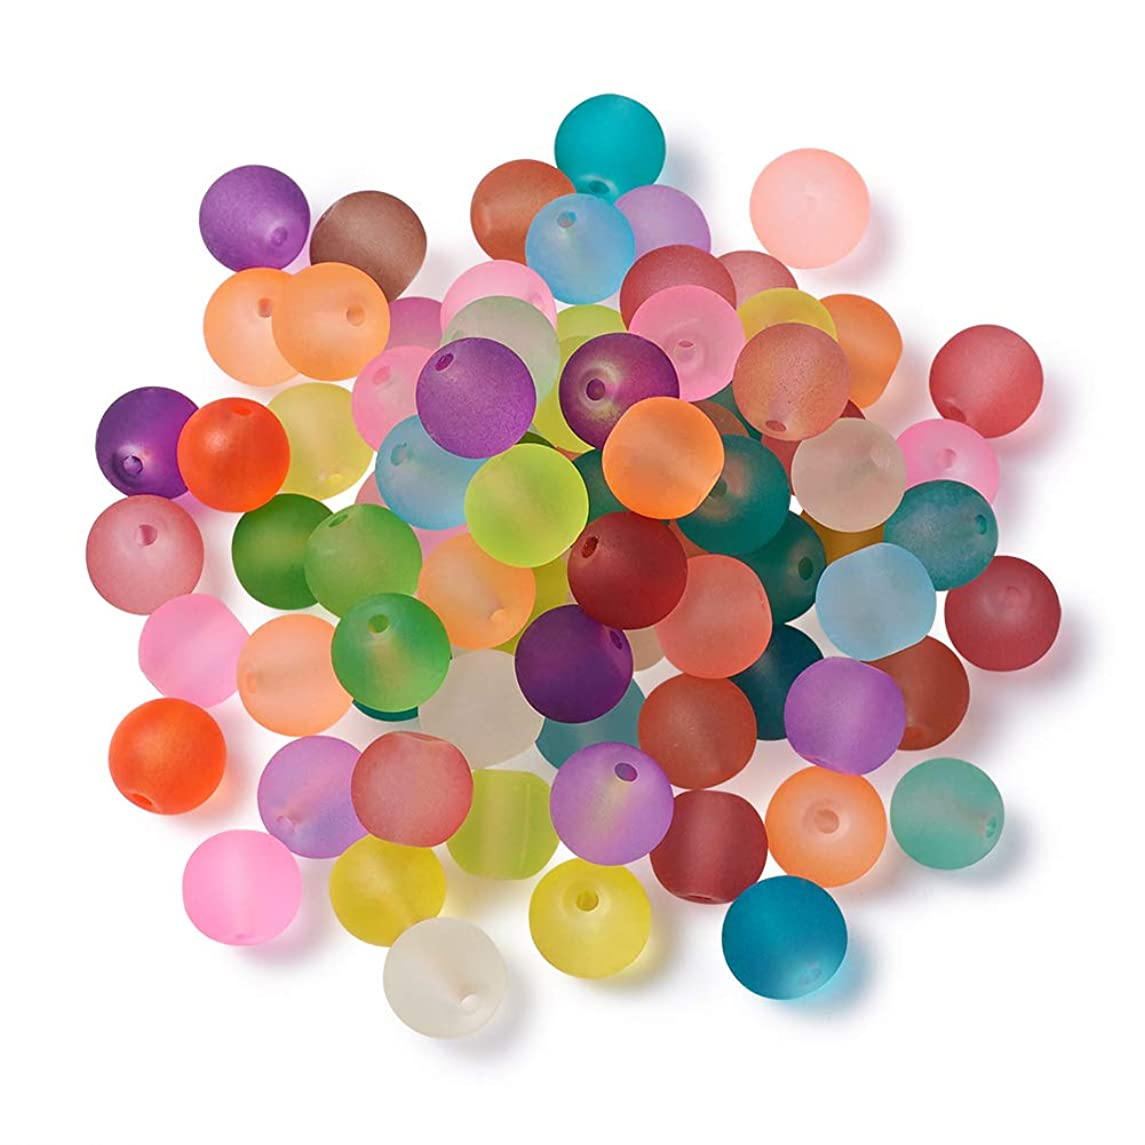 Craftdady 500PCS 8mm Assorted Mixed Round Transparent Frosted Crystal Glass Beads Loose Beads for Jewelry Making